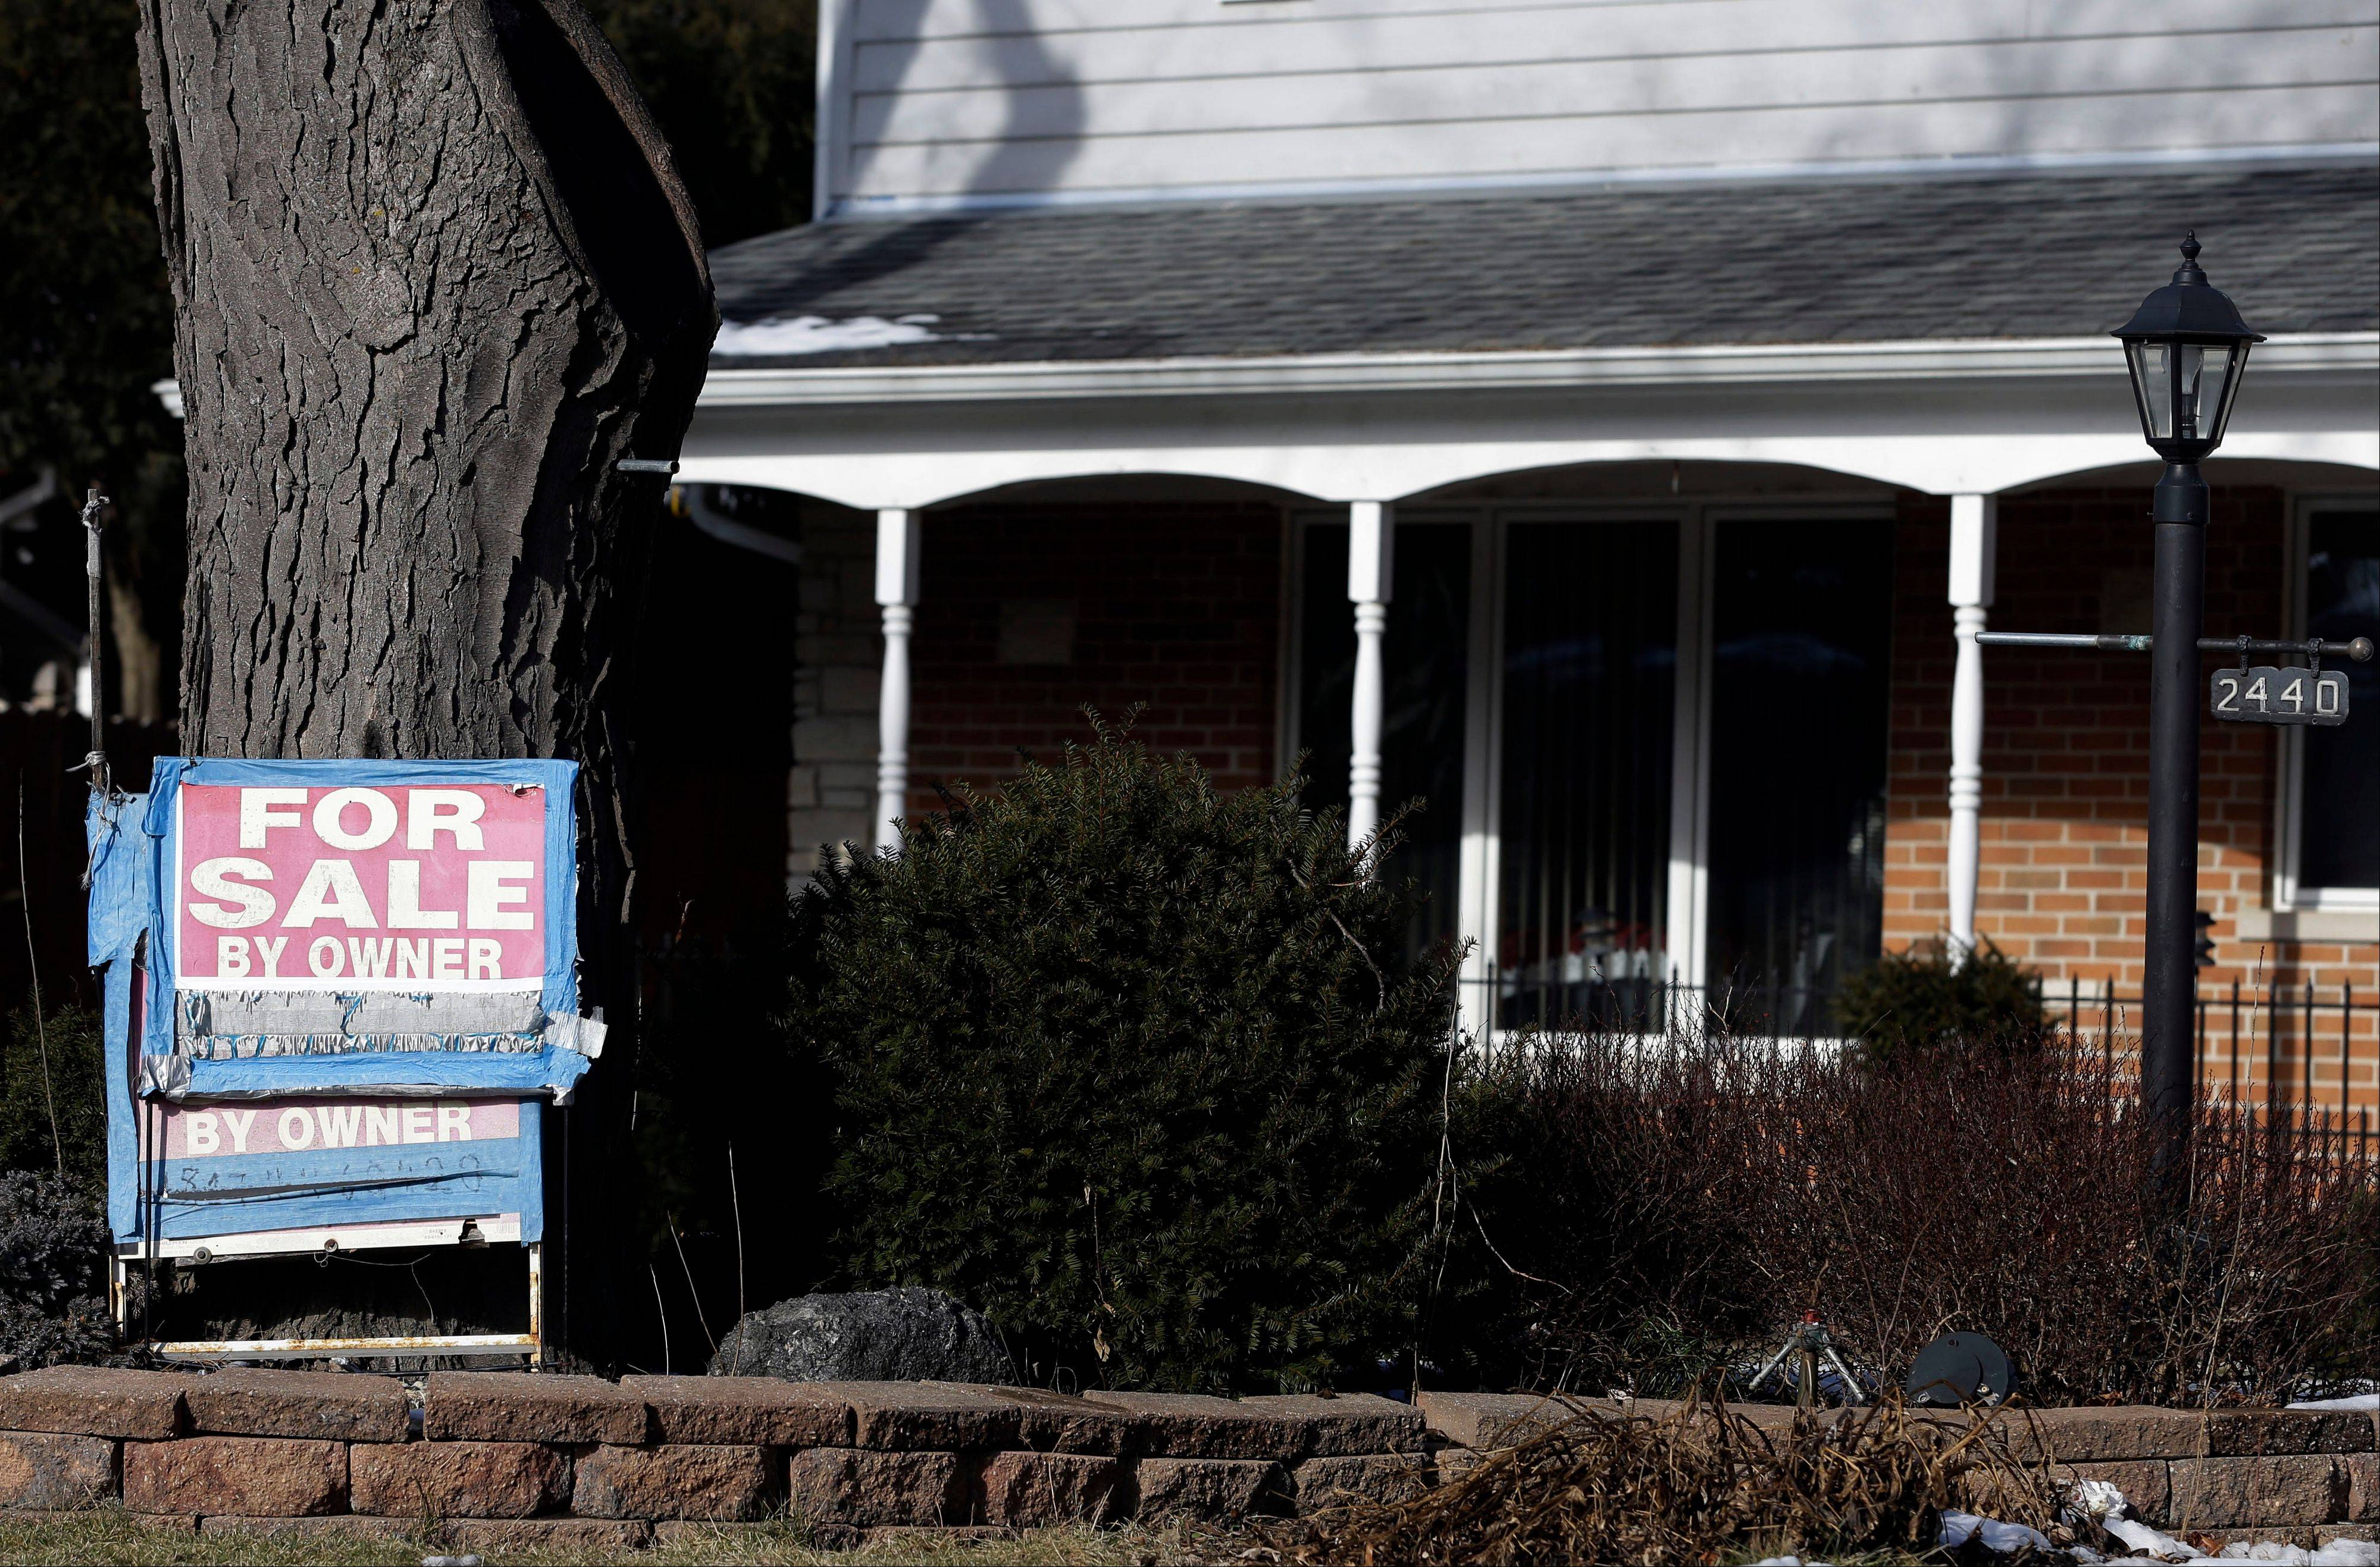 home is for sale in Glenview U.S. sales of previously occupied homes rose in January to the second-highest level in three years, a sign that the housing market is sustaining its recovery and helping bolster the economy.